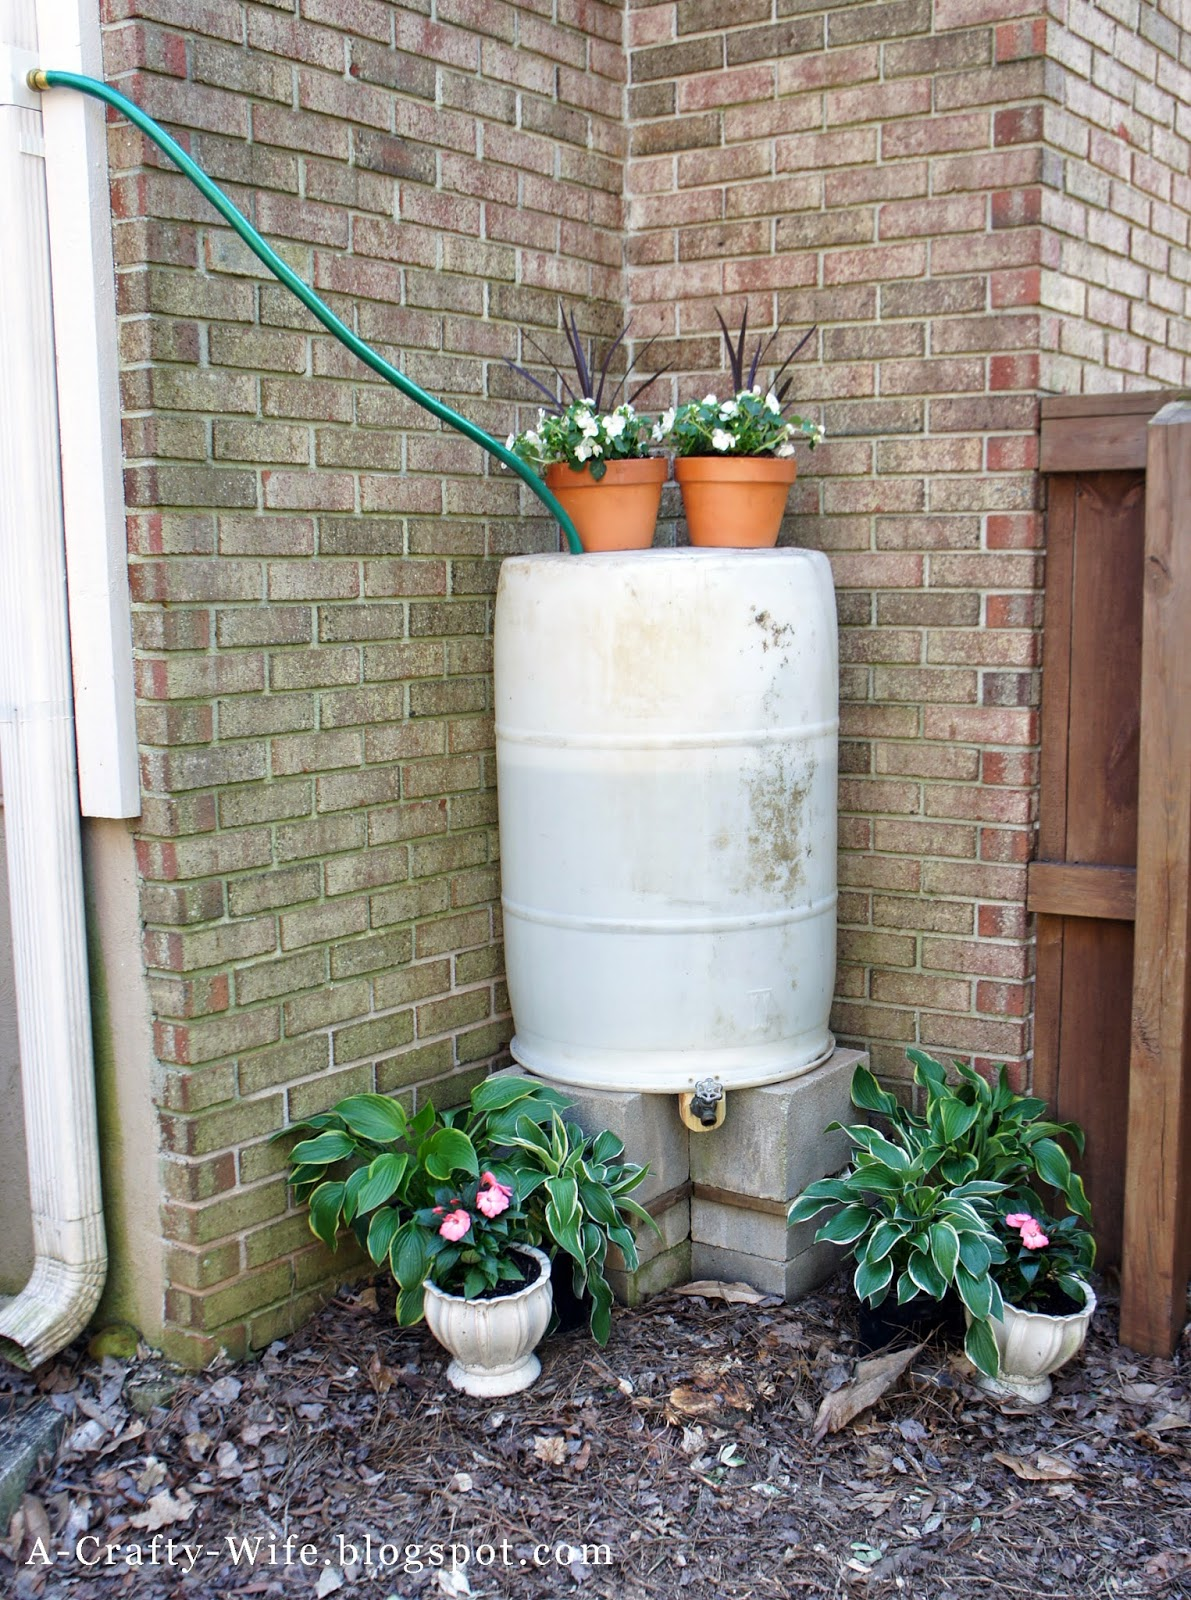 Make your own rain barrel to collect rainwater | A Crafty Wife